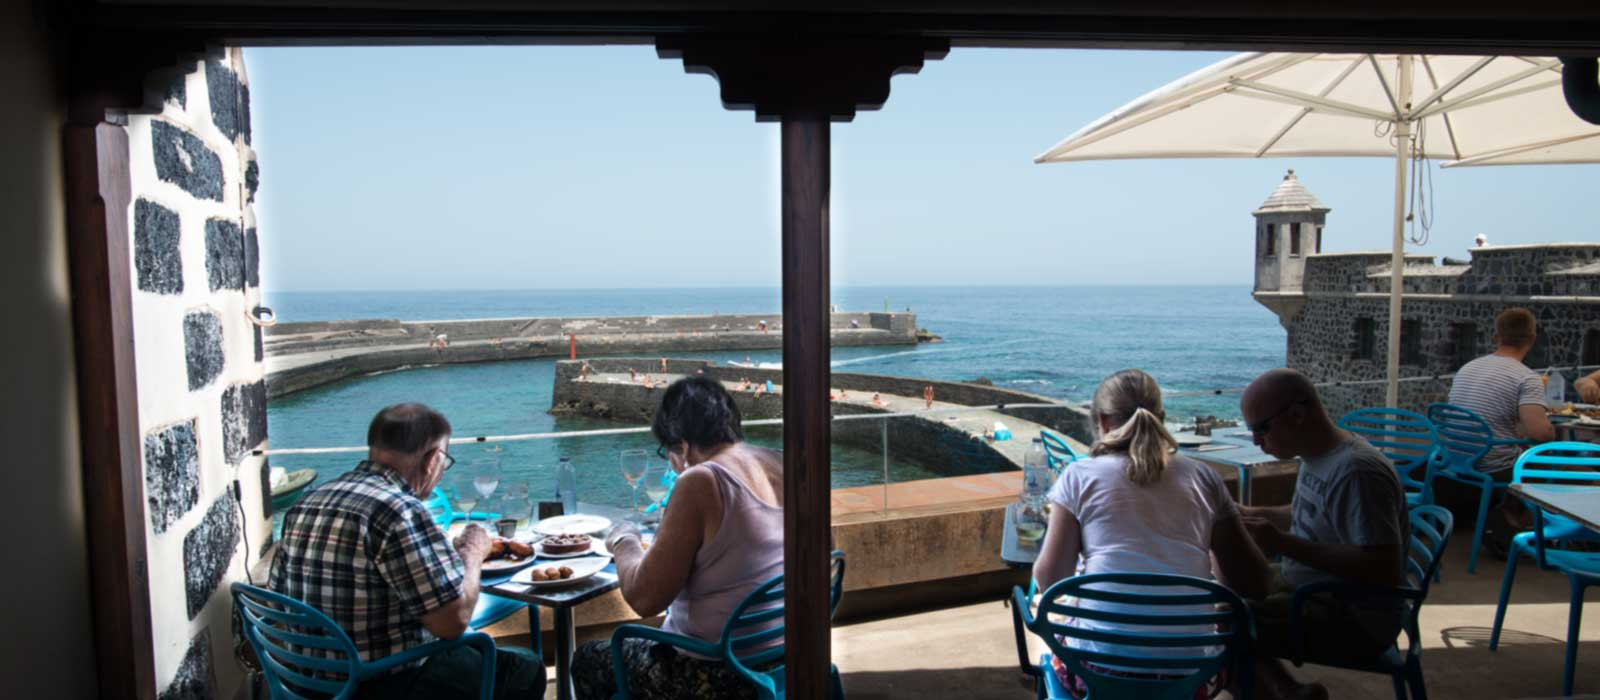 Views of the restaurant from the outside terrace